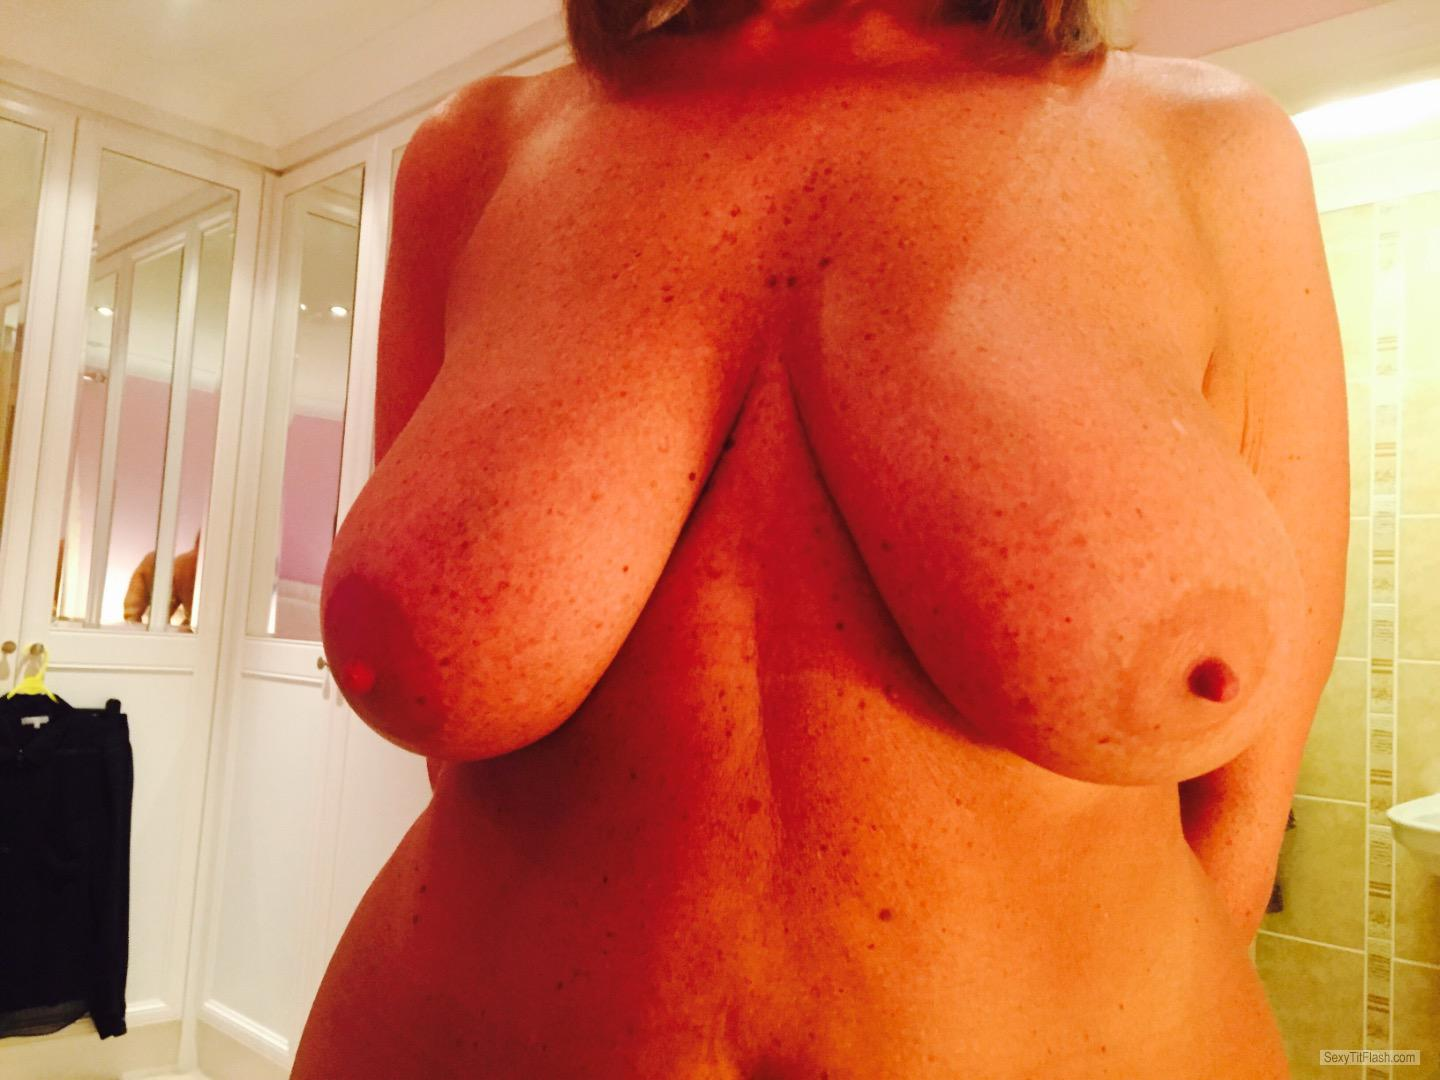 My Big Tits Selfie by Flirt